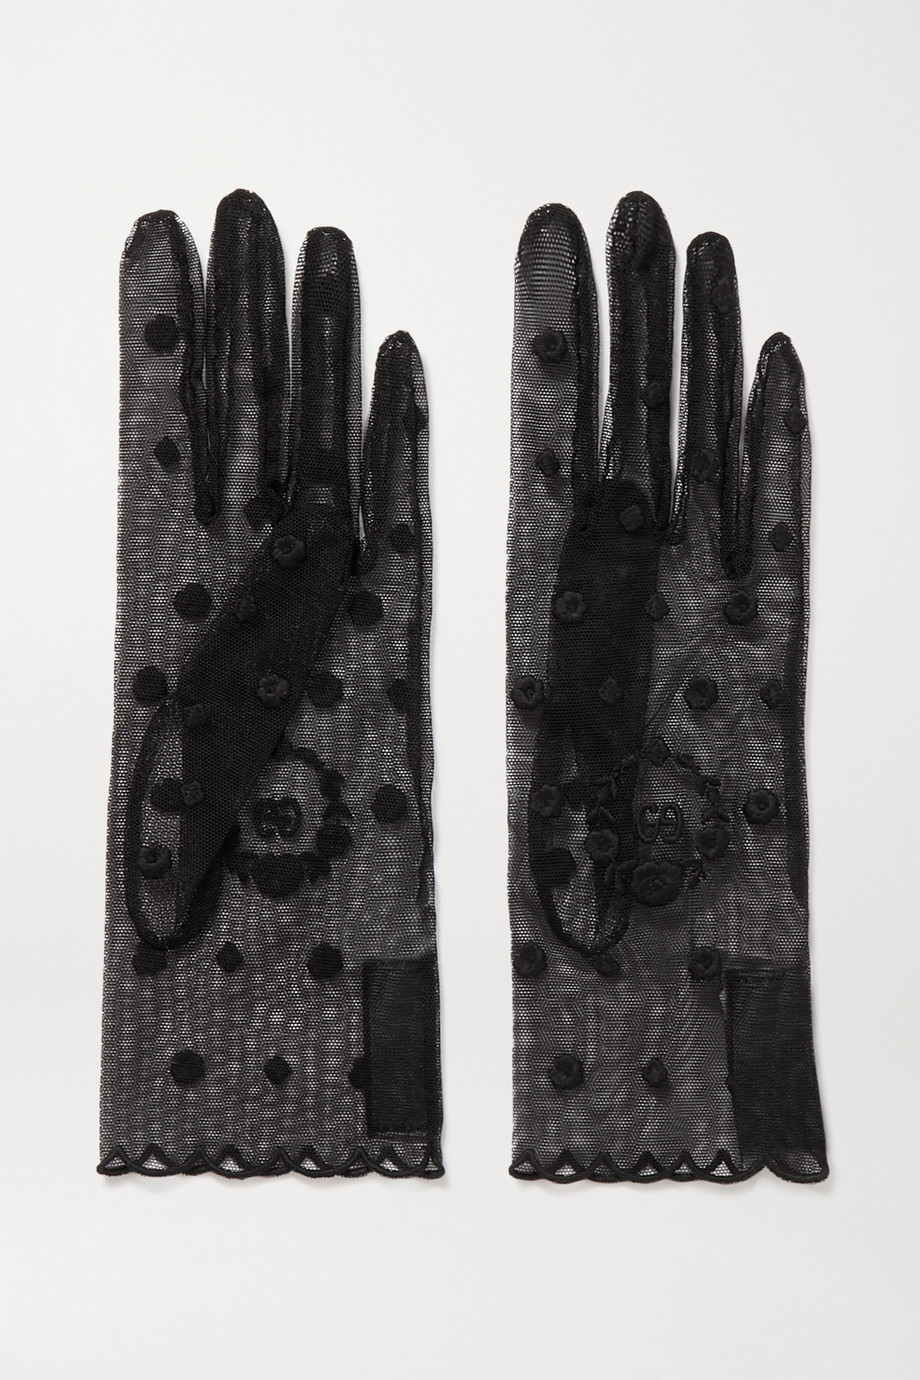 Gucci Laurel embroidered tulle gloves